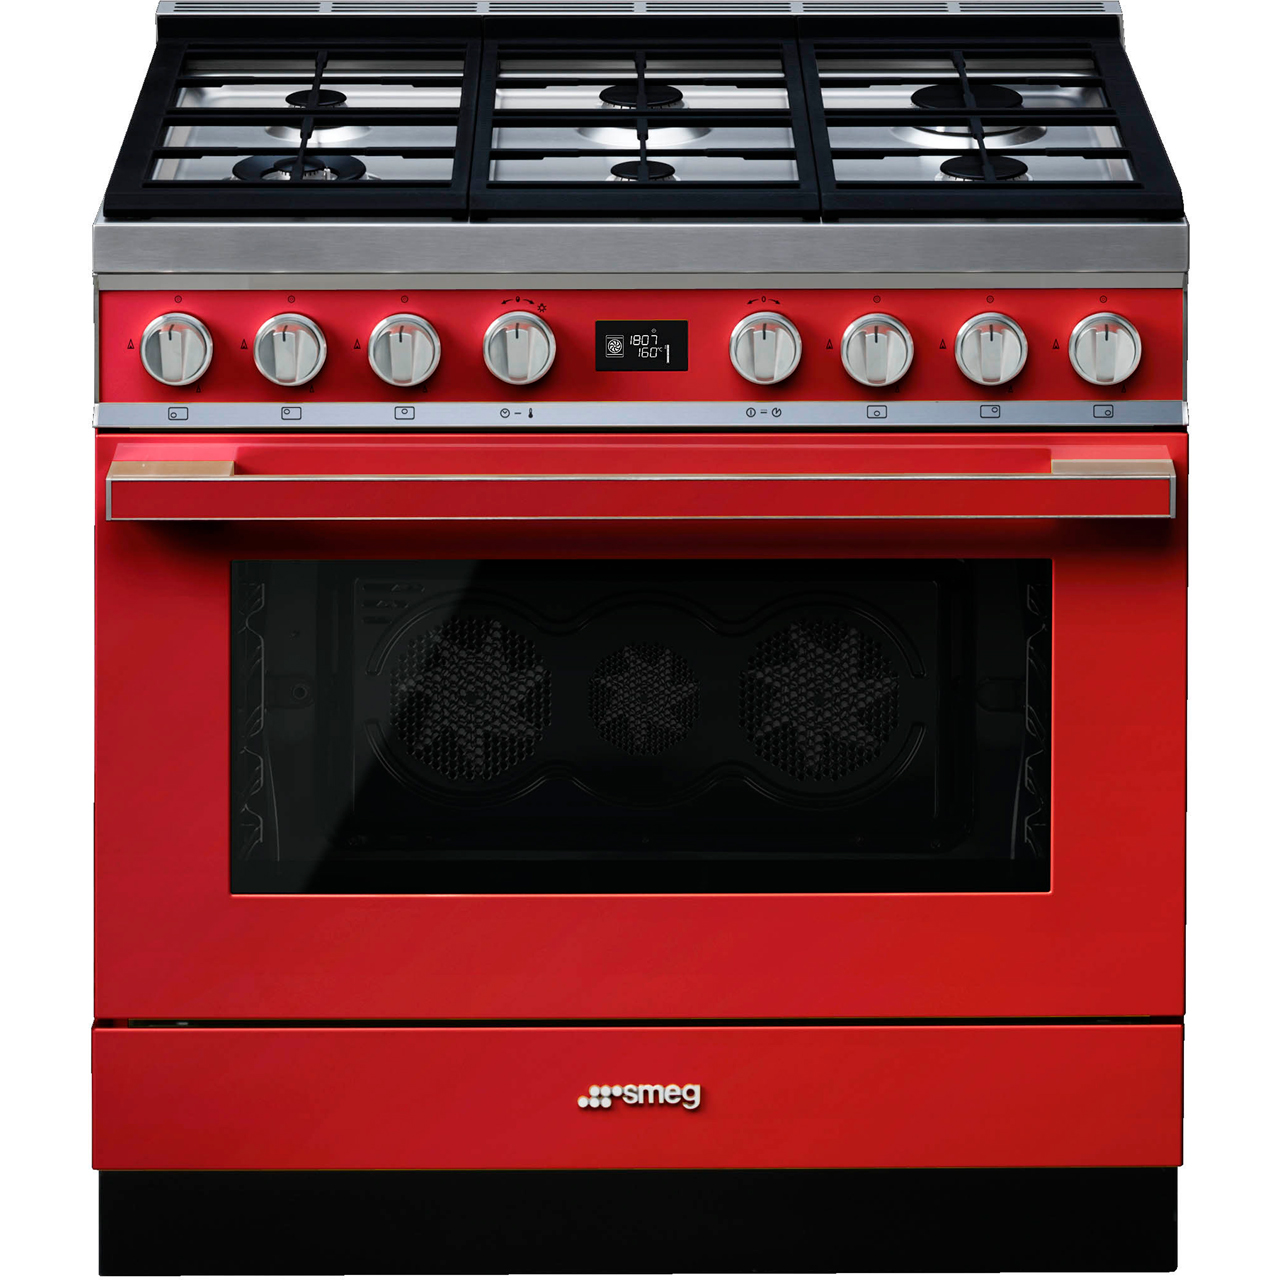 smeg portofino cpf9gpr 90cm dual fuel range cooker review. Black Bedroom Furniture Sets. Home Design Ideas